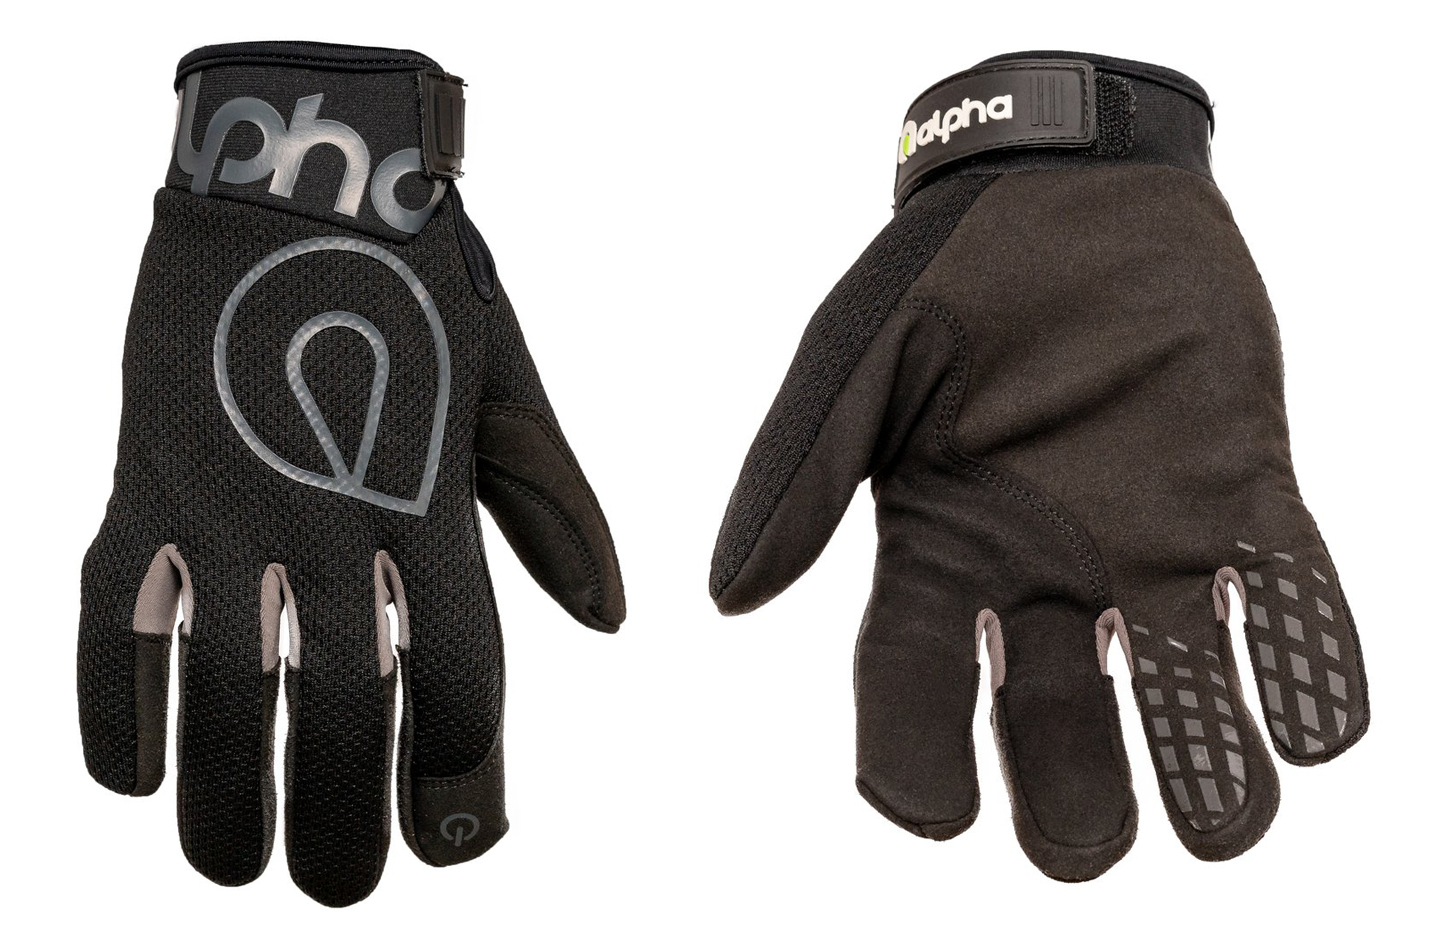 Alpha Gloves AG02-01-M Gloves, Shop, The Standard, Hook and Loop Closure, Neoprene Cuff, Mesh Top, Touch Screen Capable, Synthetic Leather Palm, Black, Medium, Pair